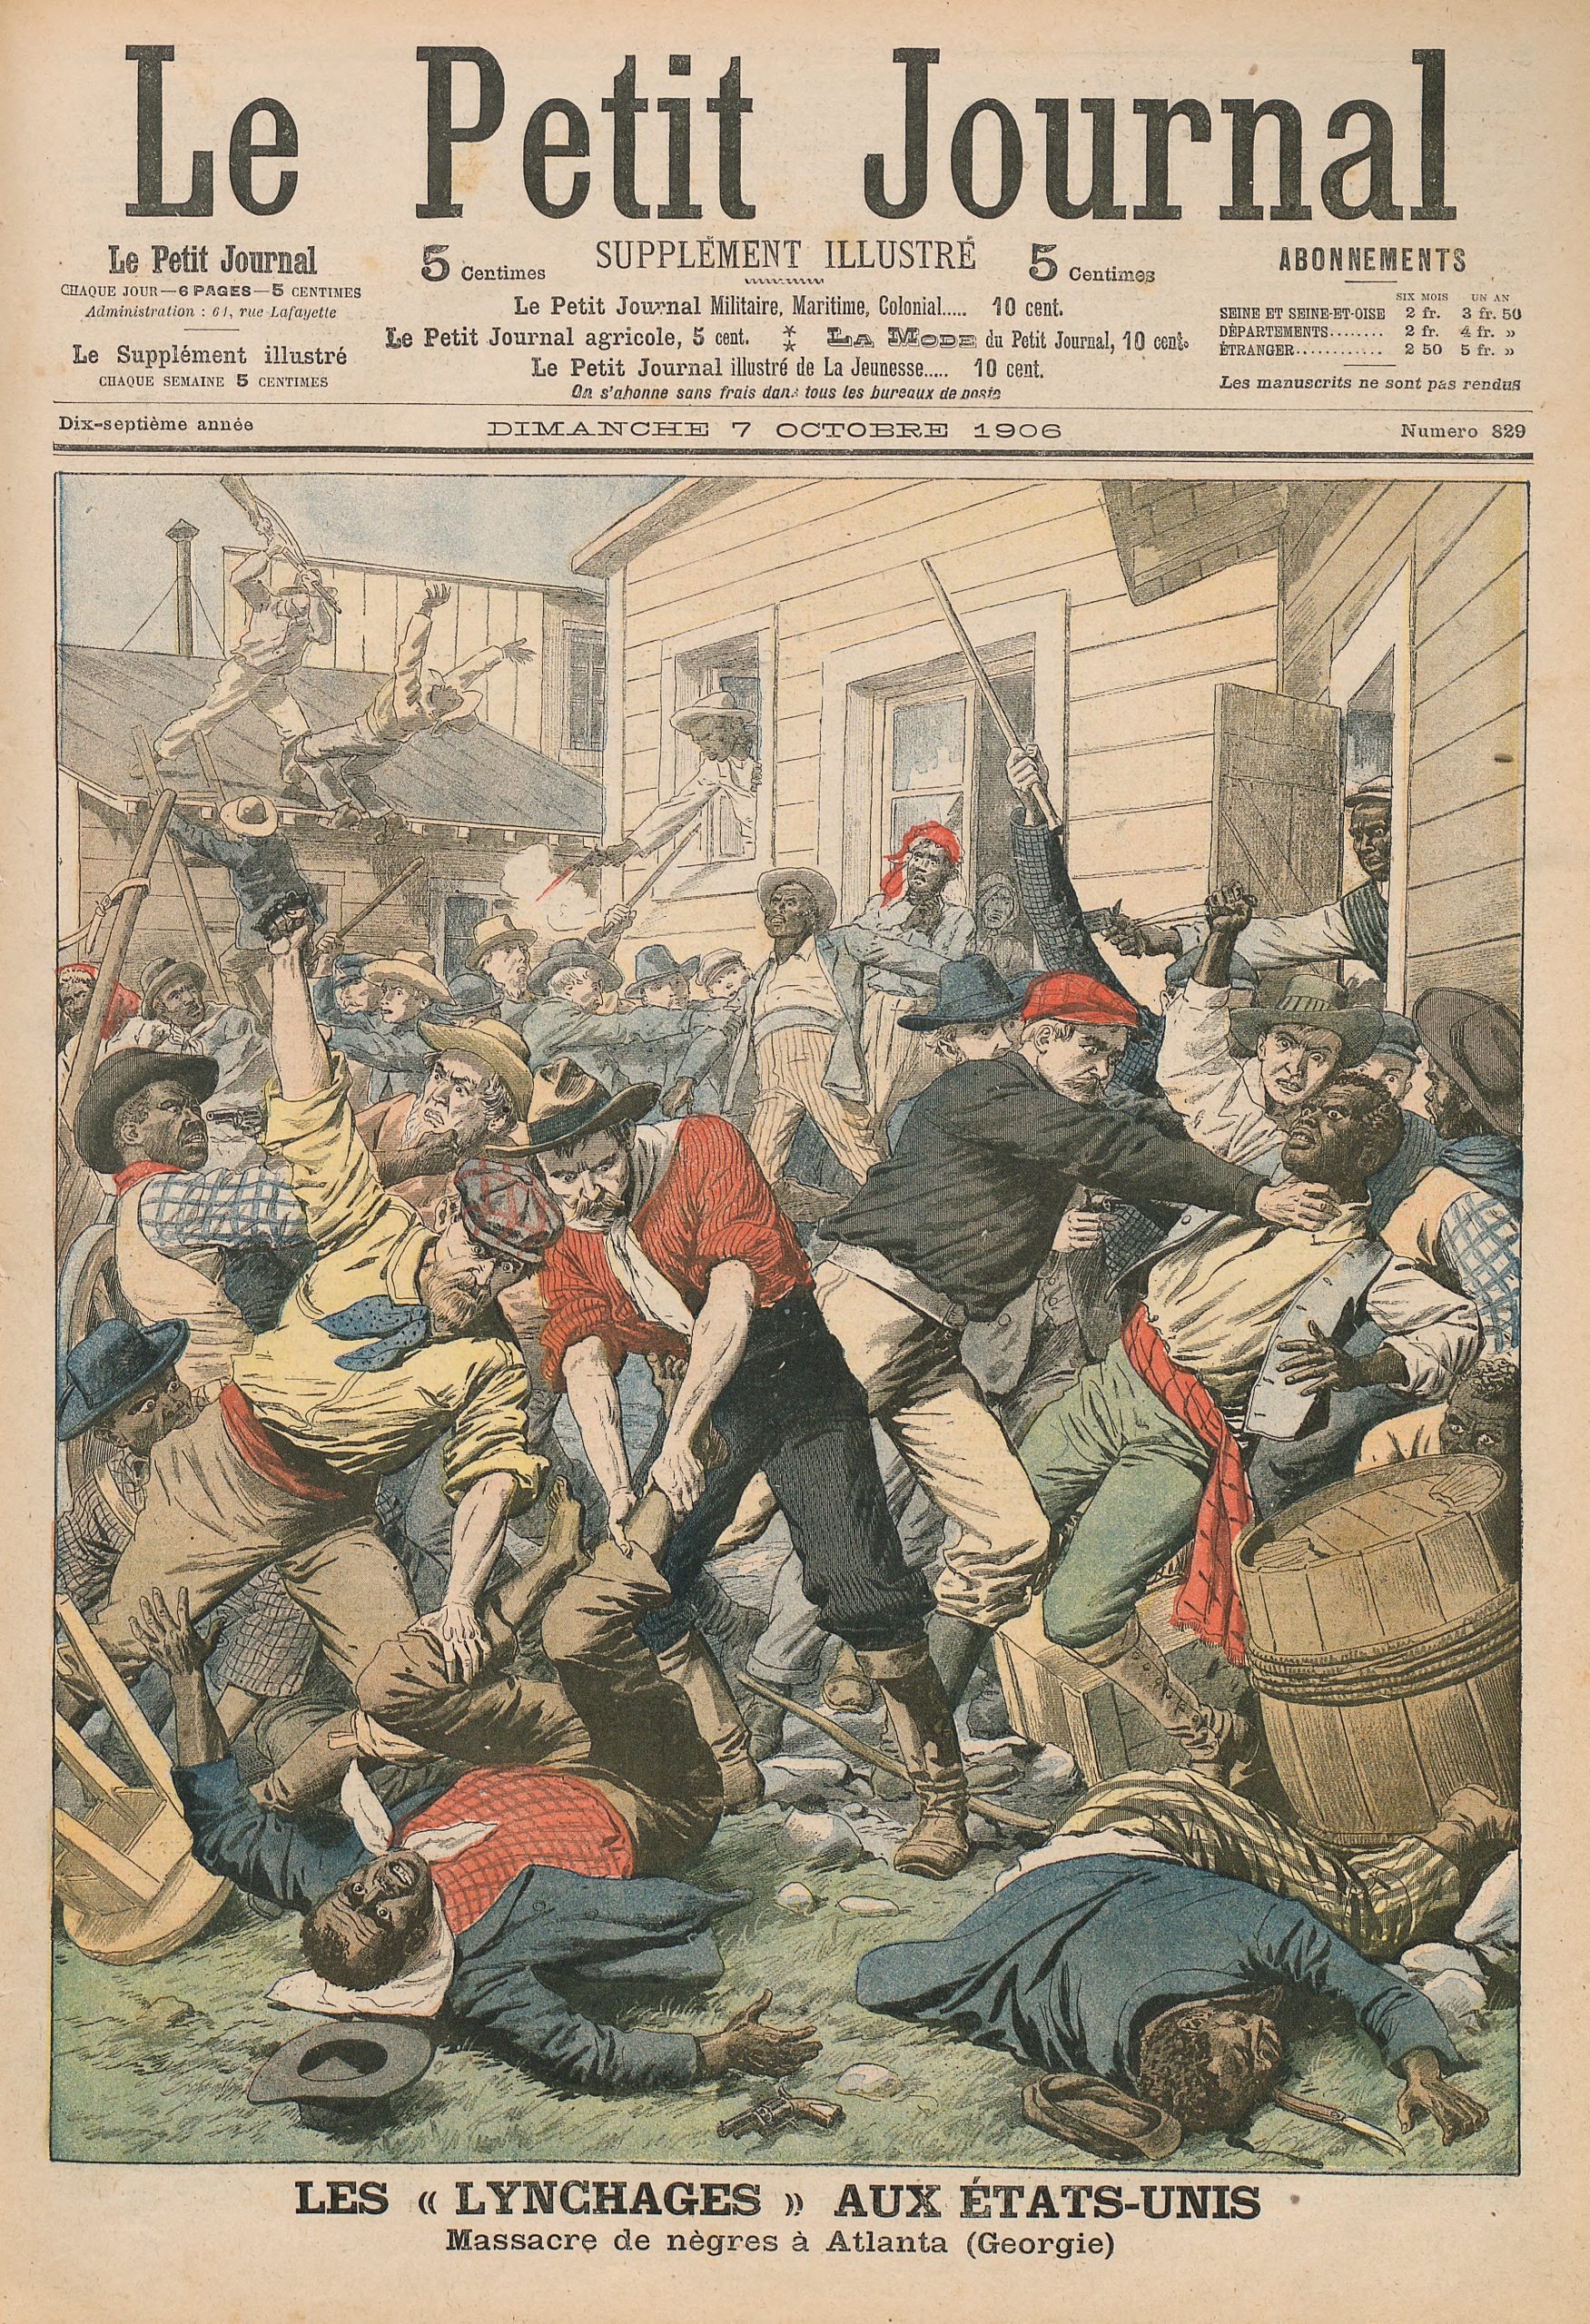 Cover of Le Petit Journal on October 7, 1906.